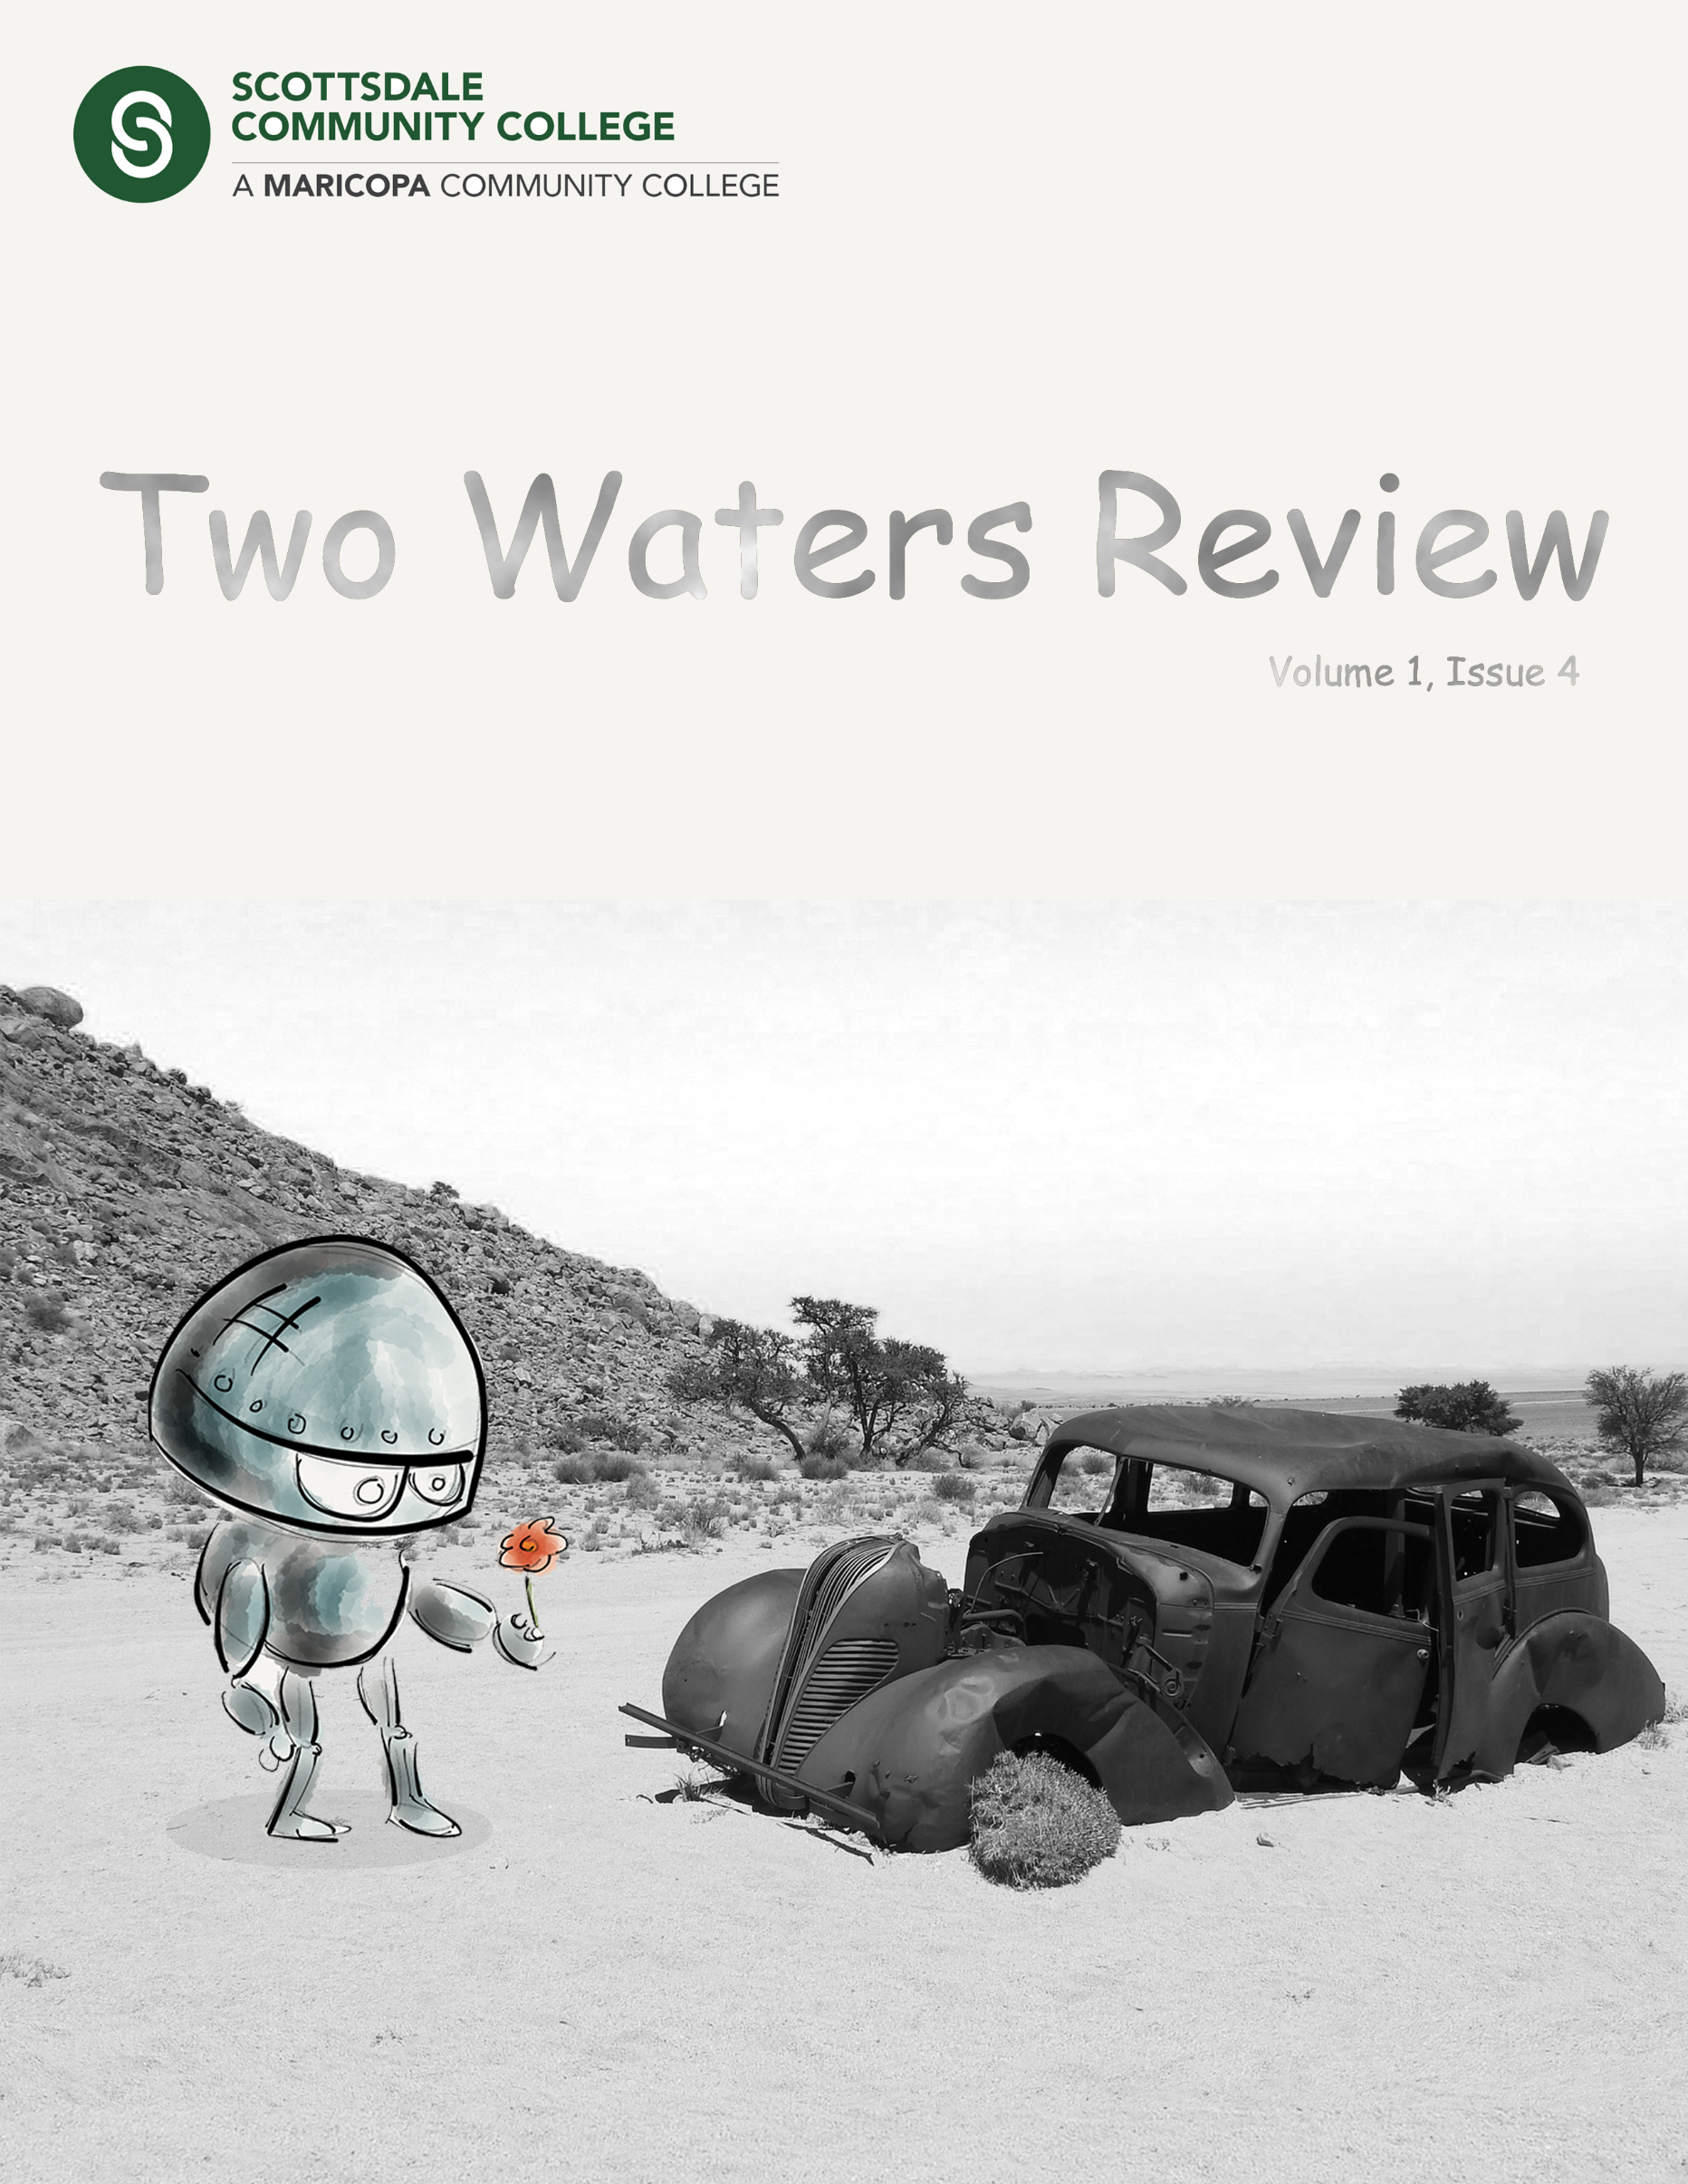 Two Waters Review 1.4 cover image of an illustrated robot offering a flower to a busted car in the desert.